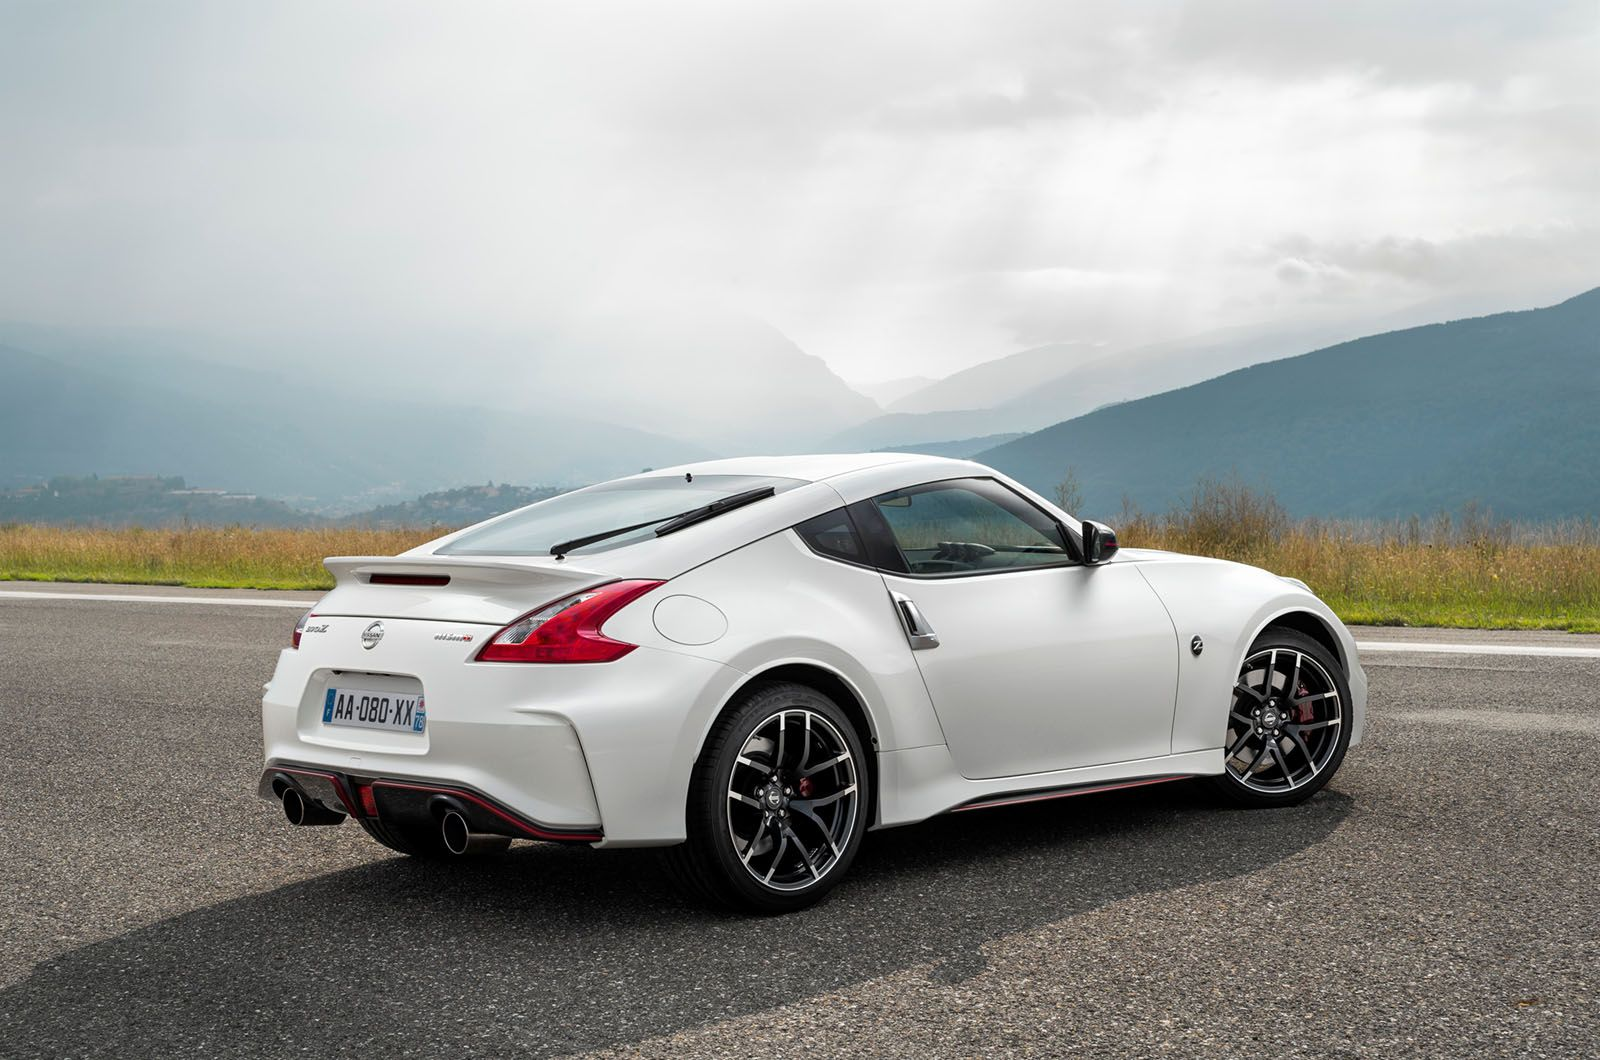 2014 Nissan 370z Nismo First Drive Review Autocar Nissan 370z Nismo Nissan Sports Cars Nissan 370z